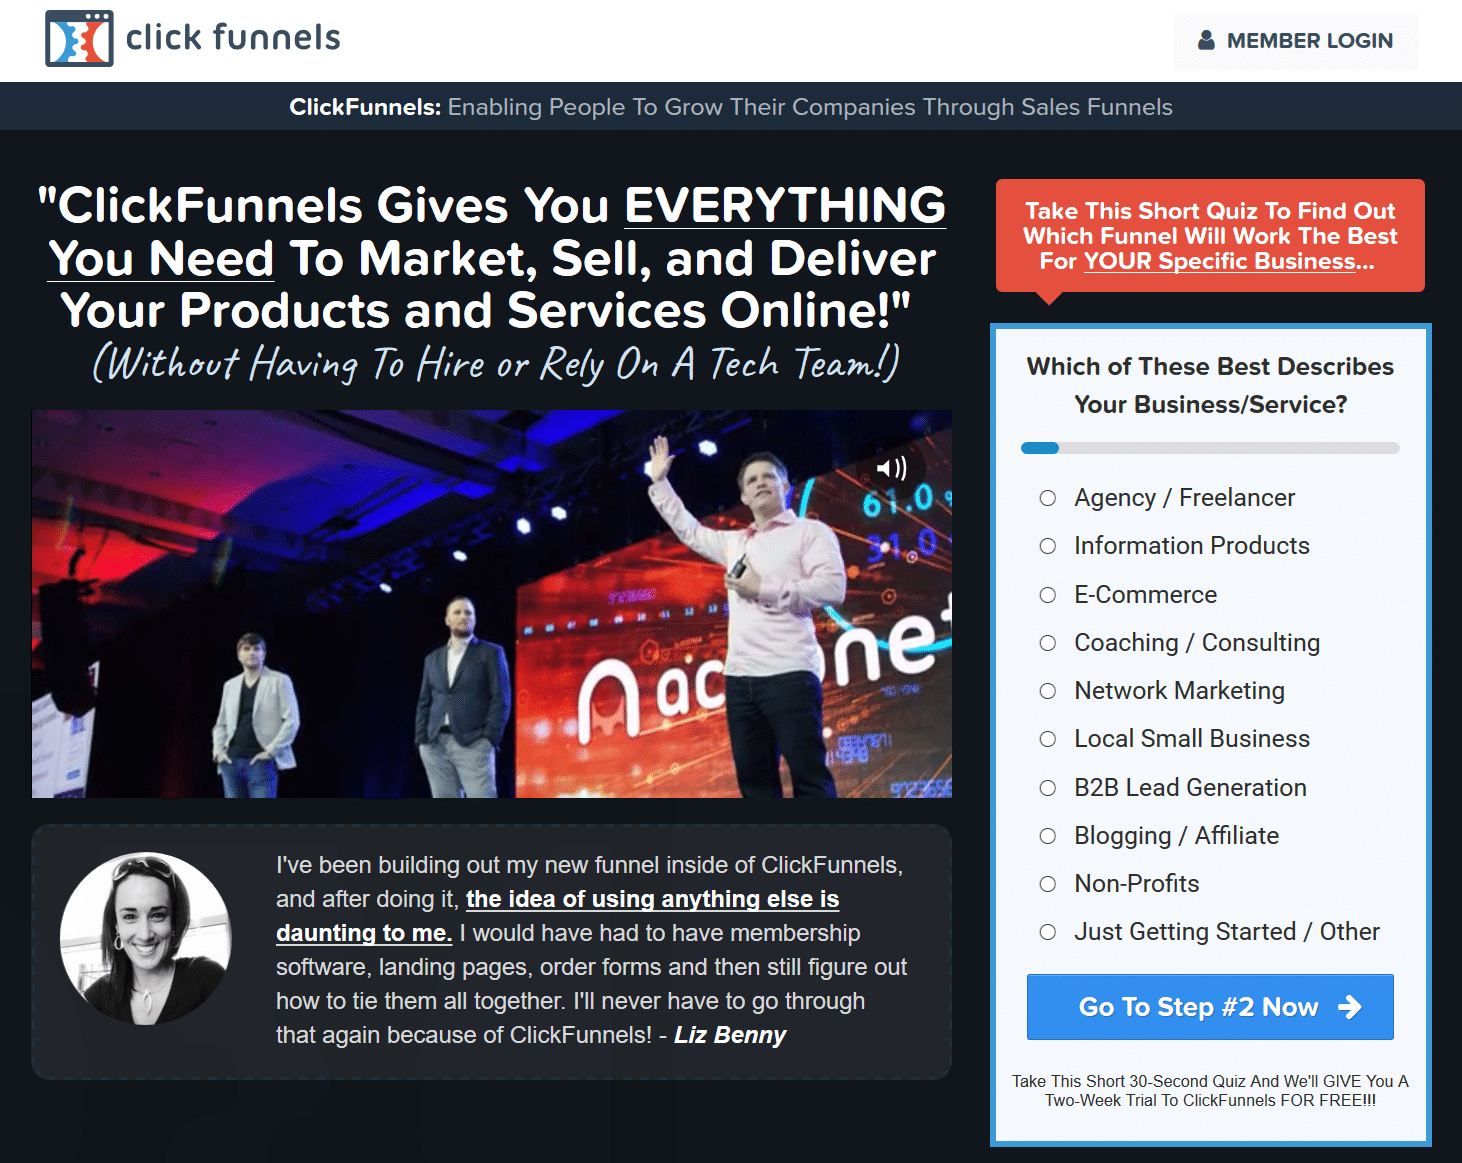 How To Change The Logo And Title Of Page Clickfunnels